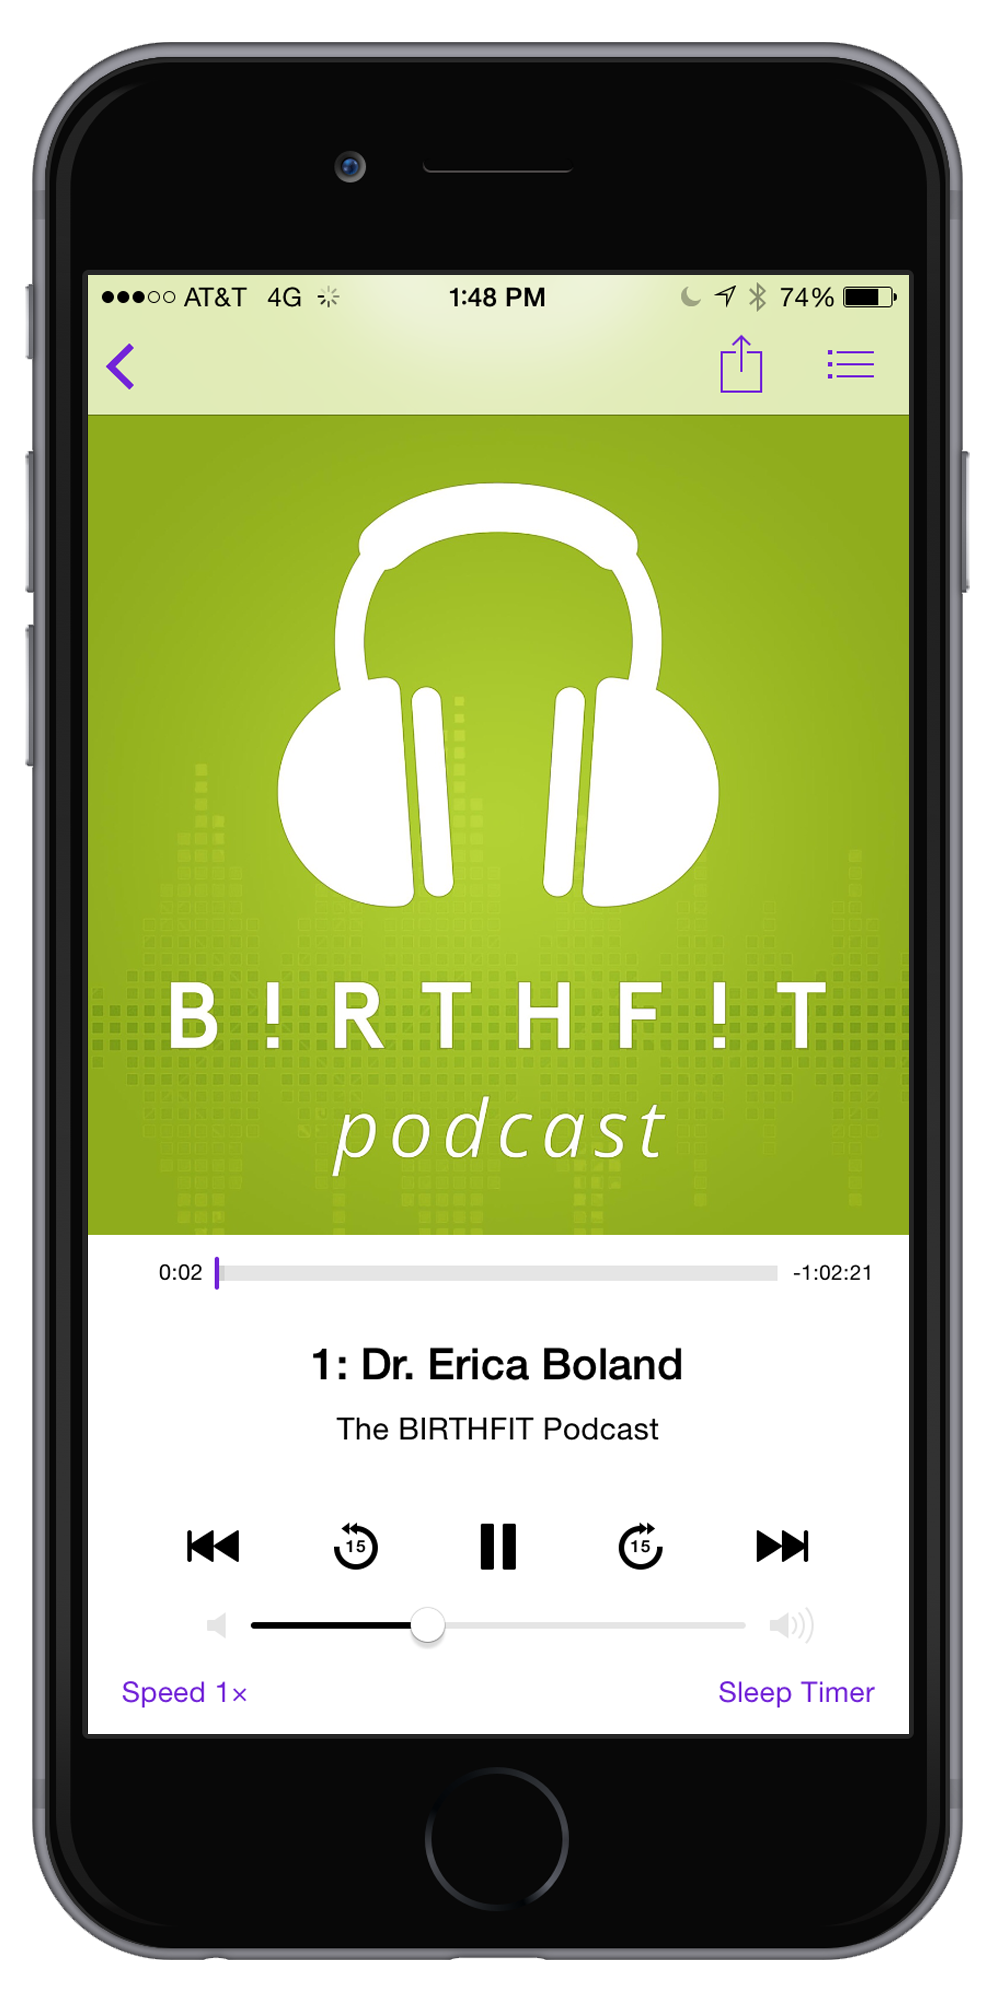 BF MOCK UP iPhone podcast 01.png